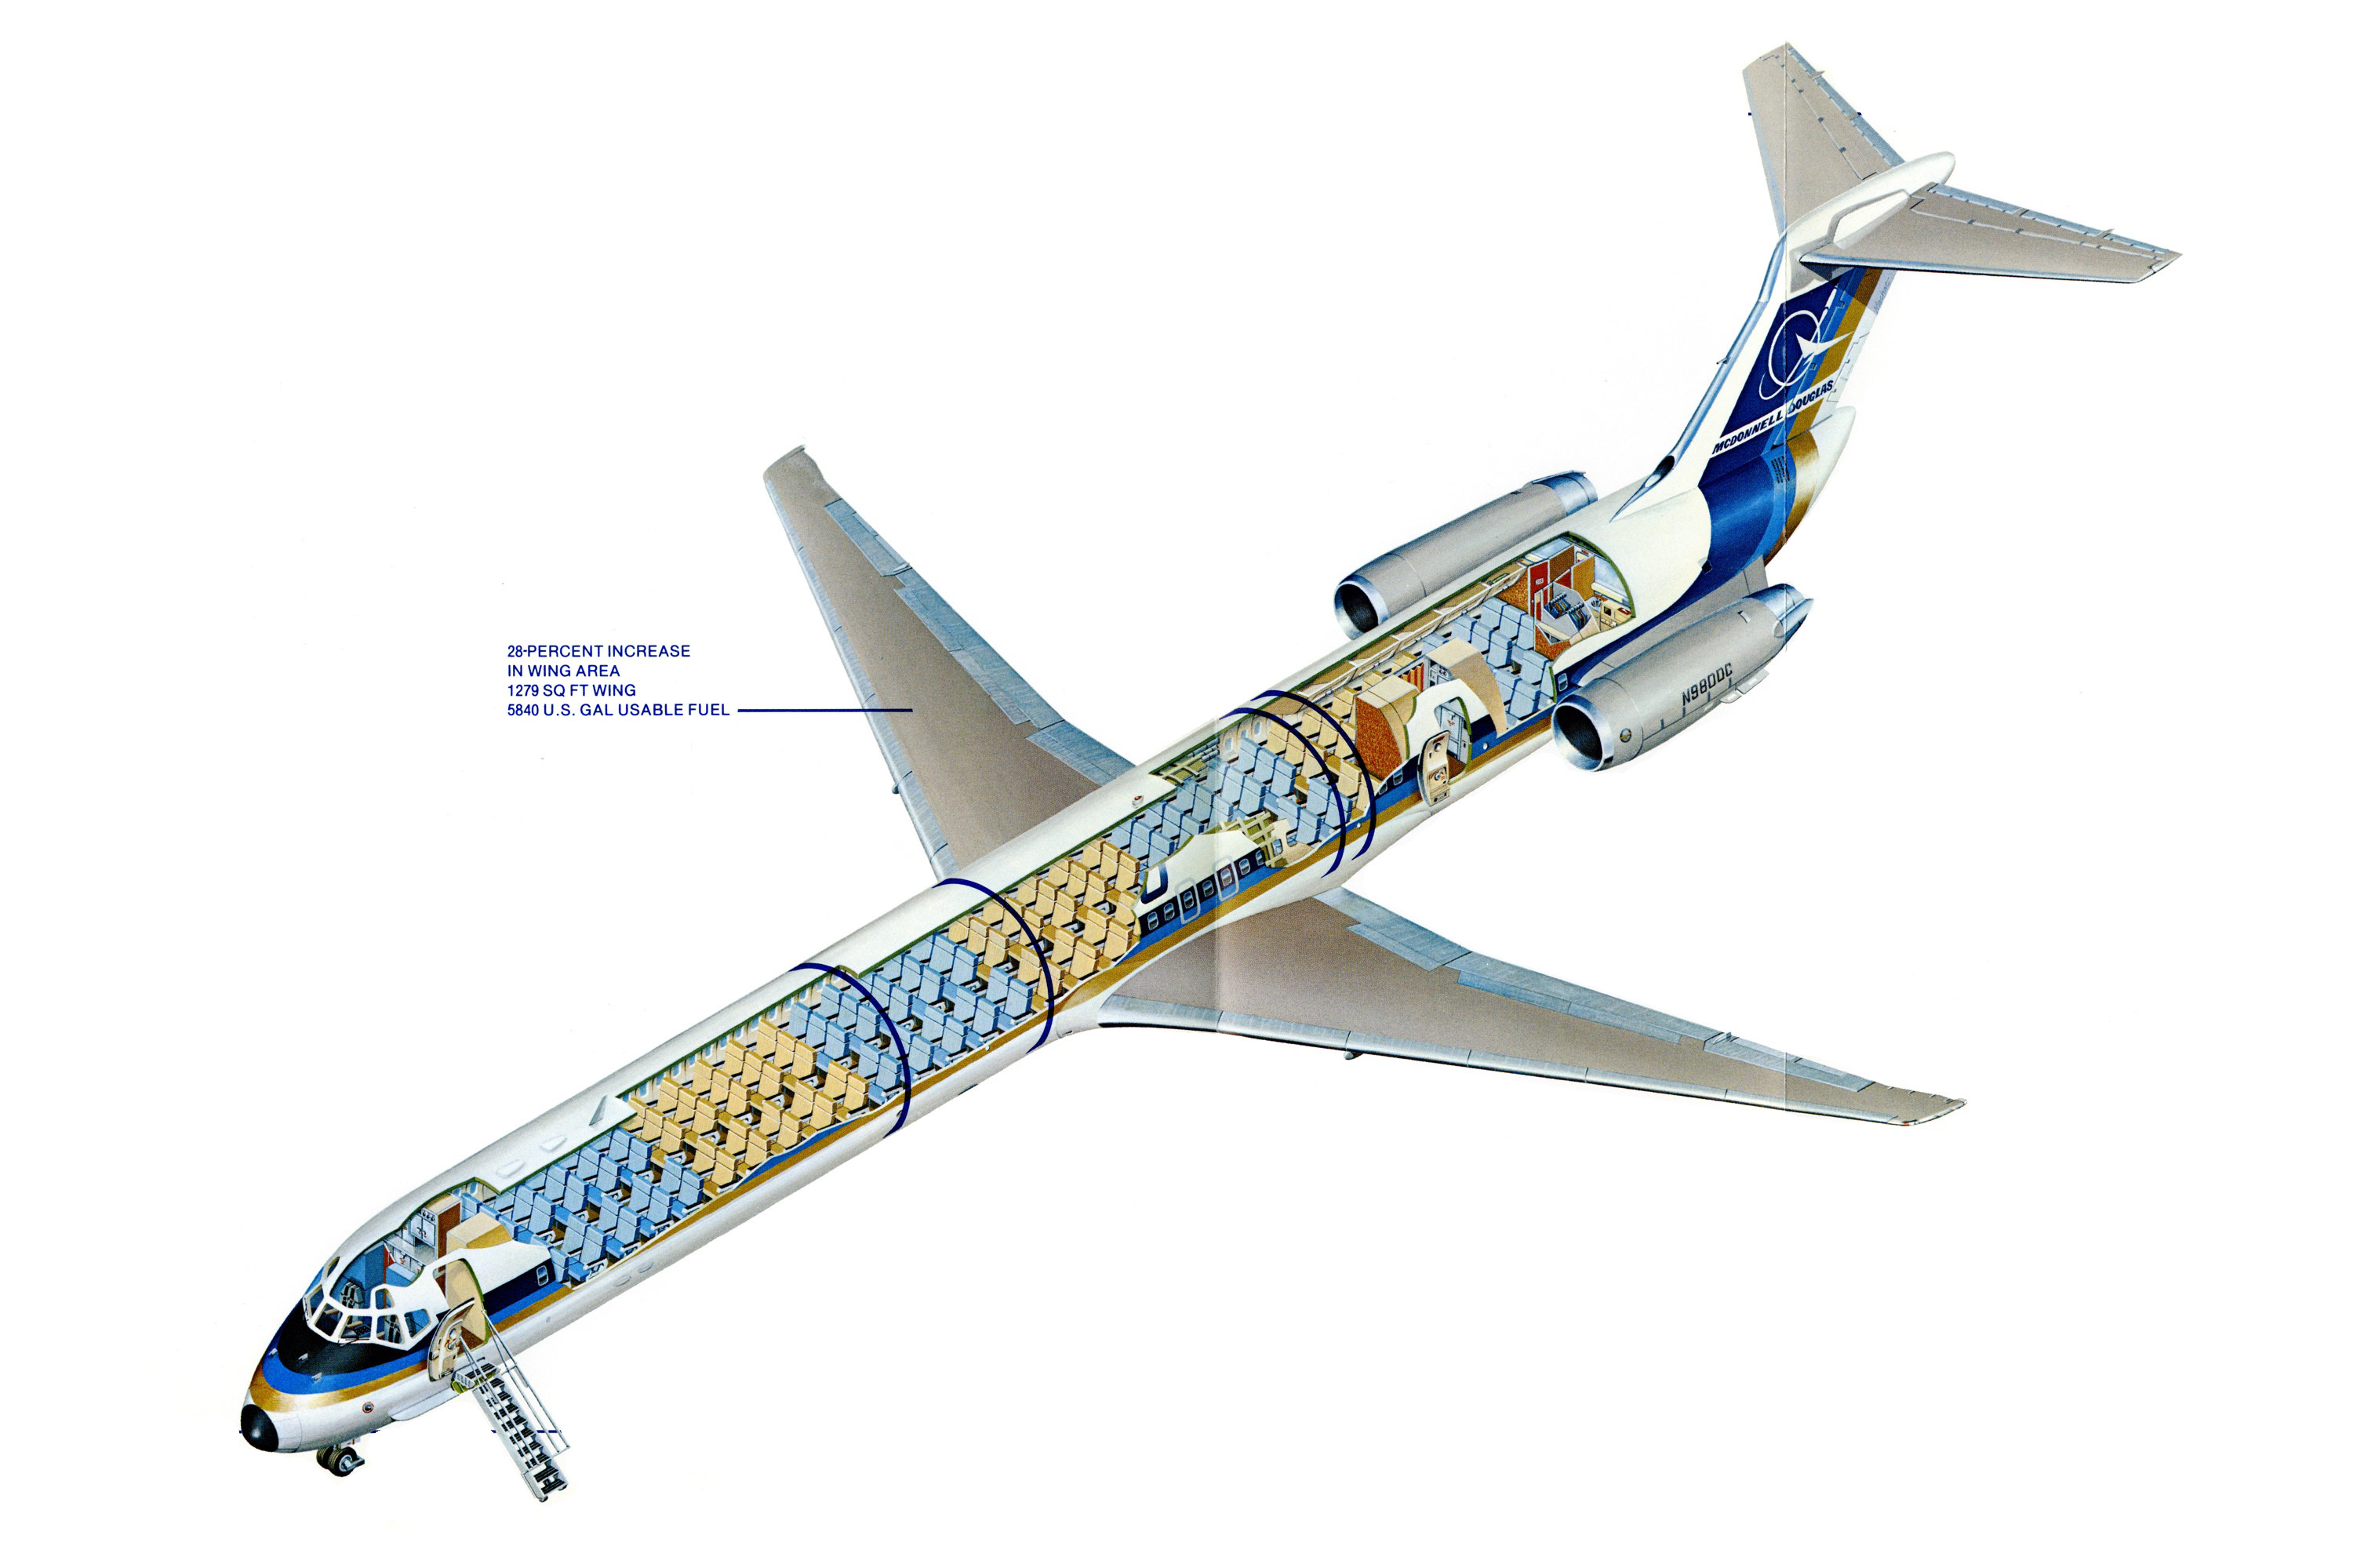 McDonnell Douglas MD-80 cutaway drawing